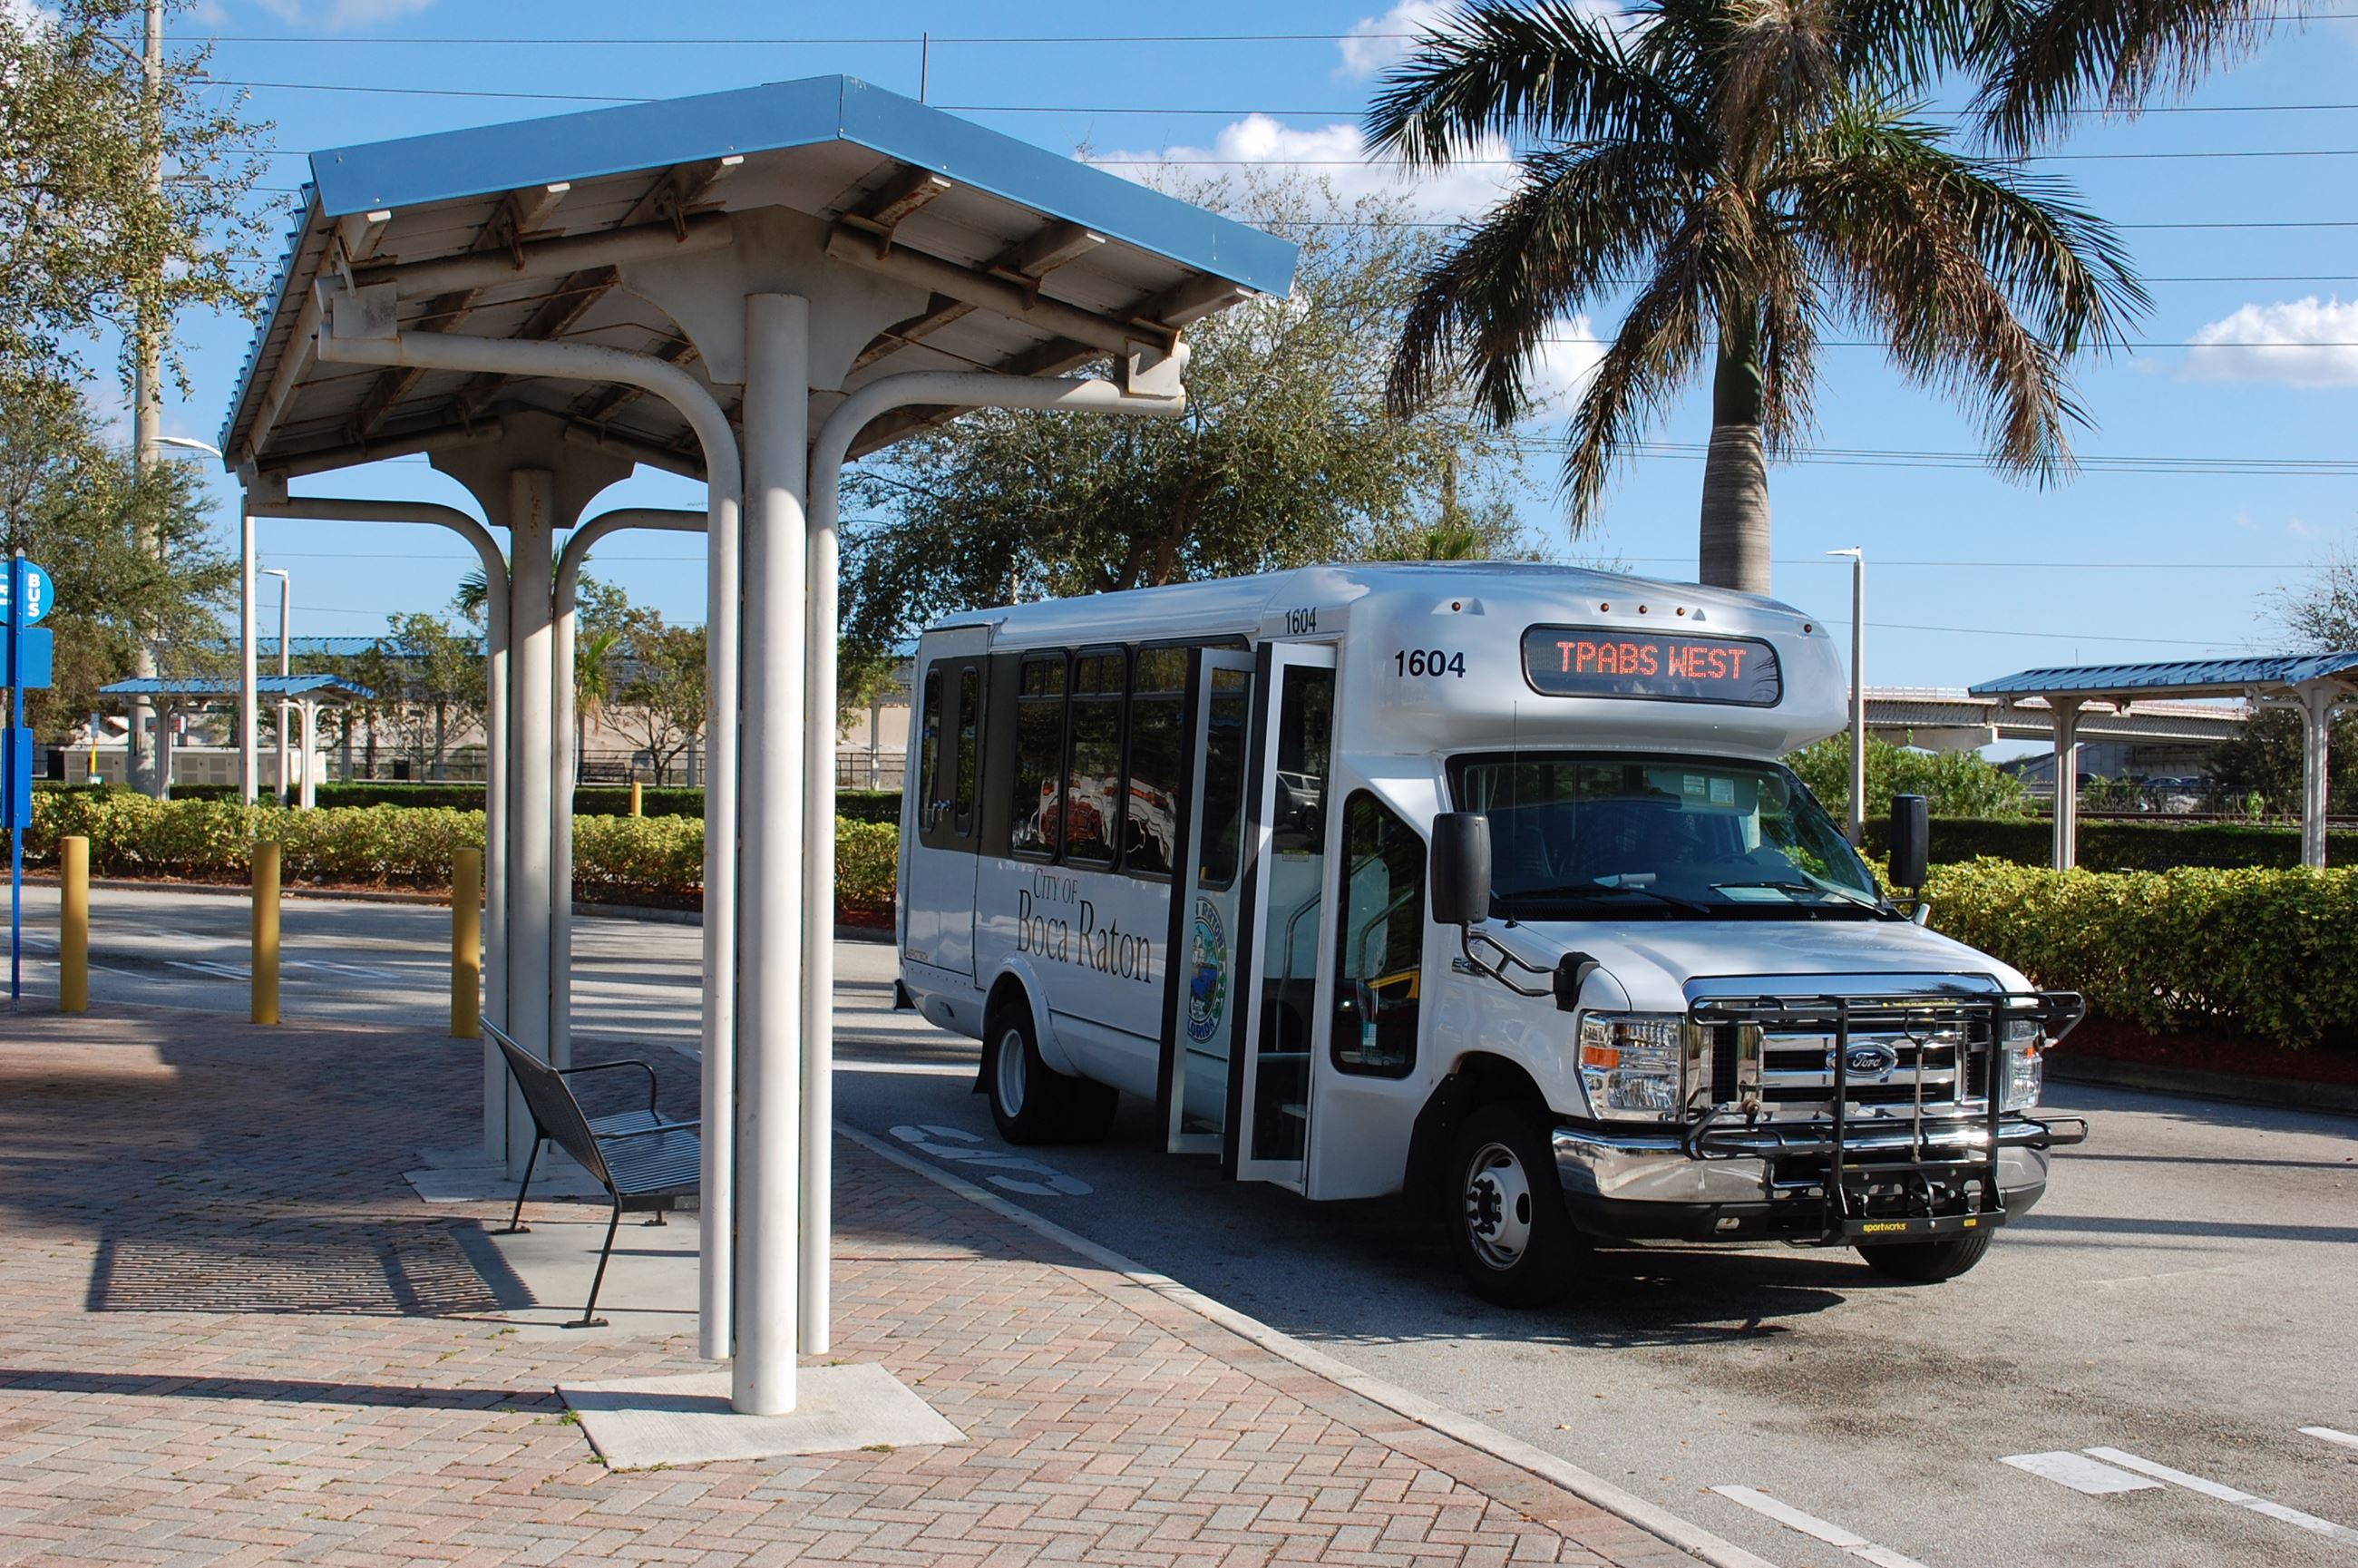 TPABS West shuttle waiting for passengers at the Tri-Rail station